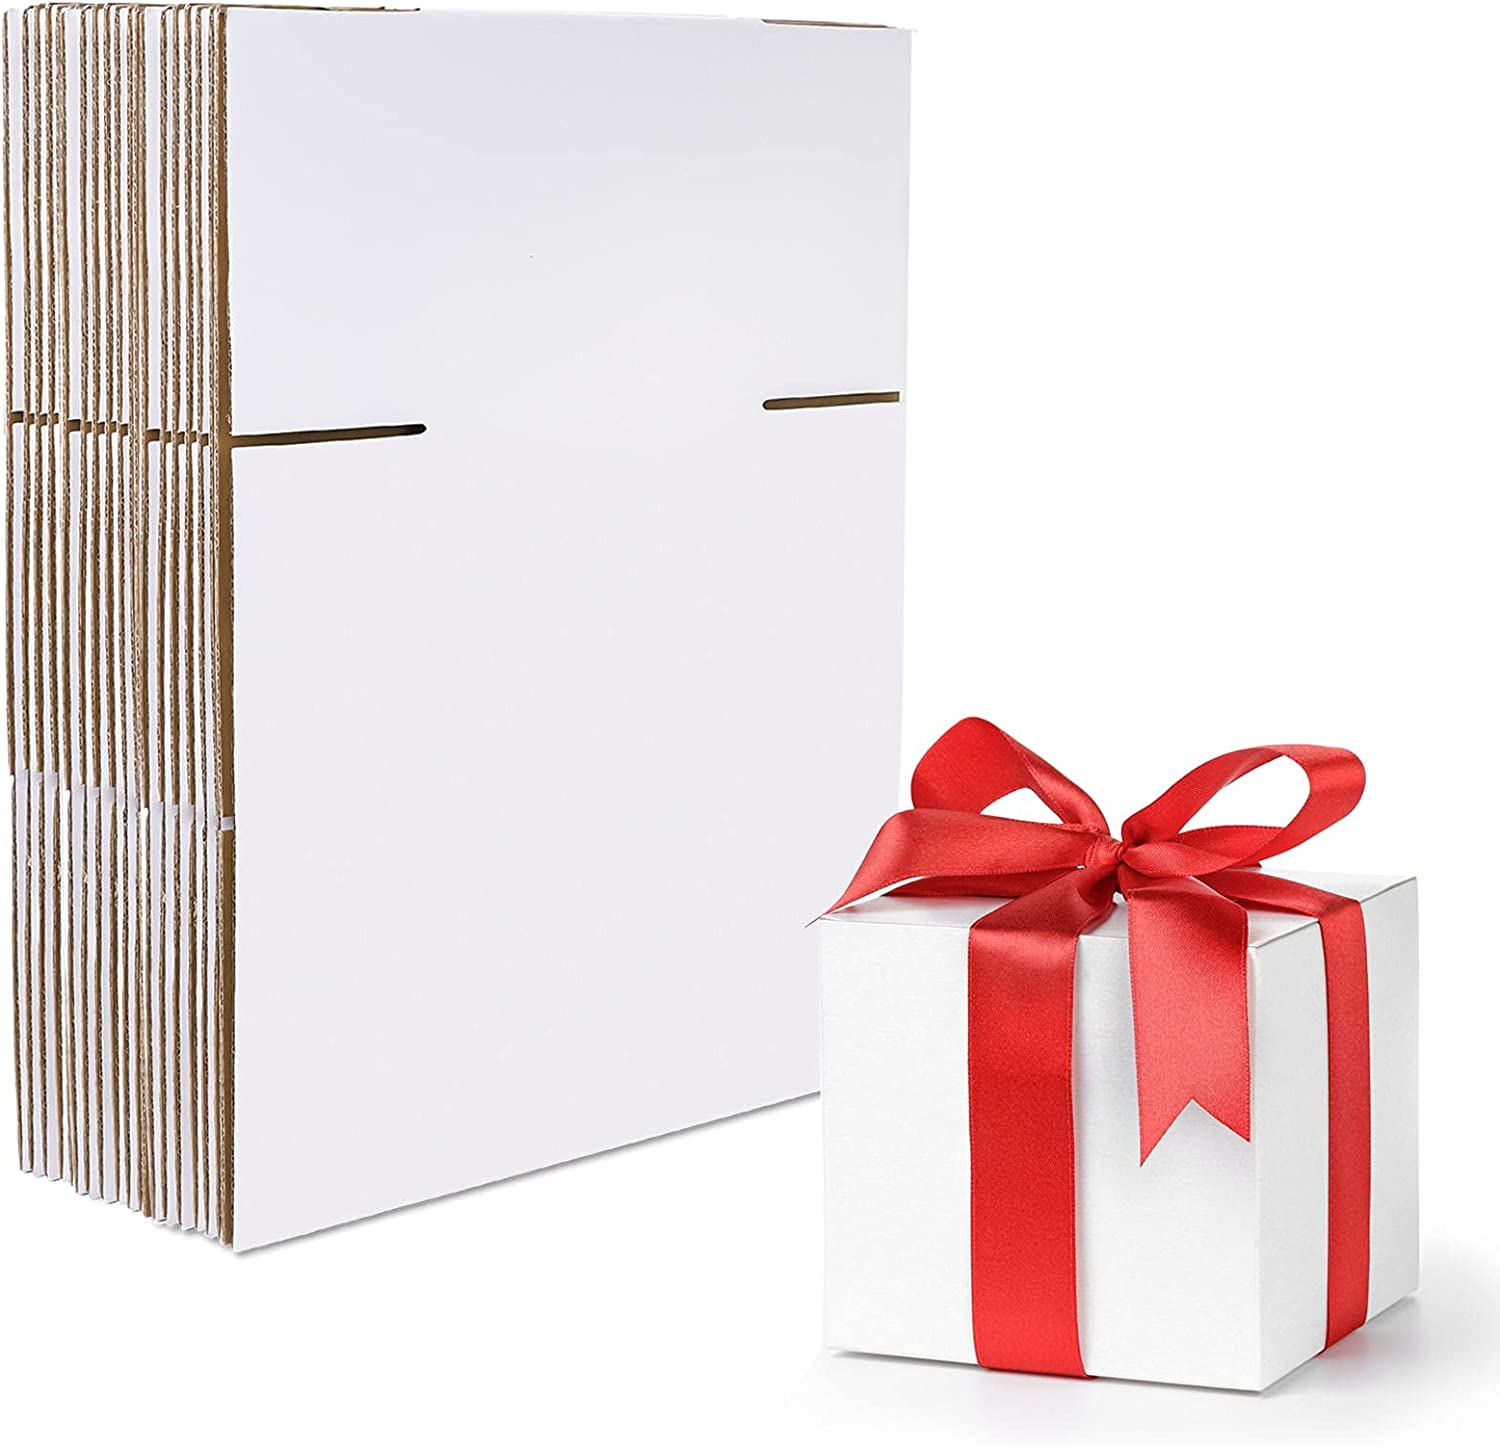 HANTAJANSS 4x4x4 Inches Ranking integrated 1st place Shipping Minneapolis Mall Box of Set Corrugated 25 White